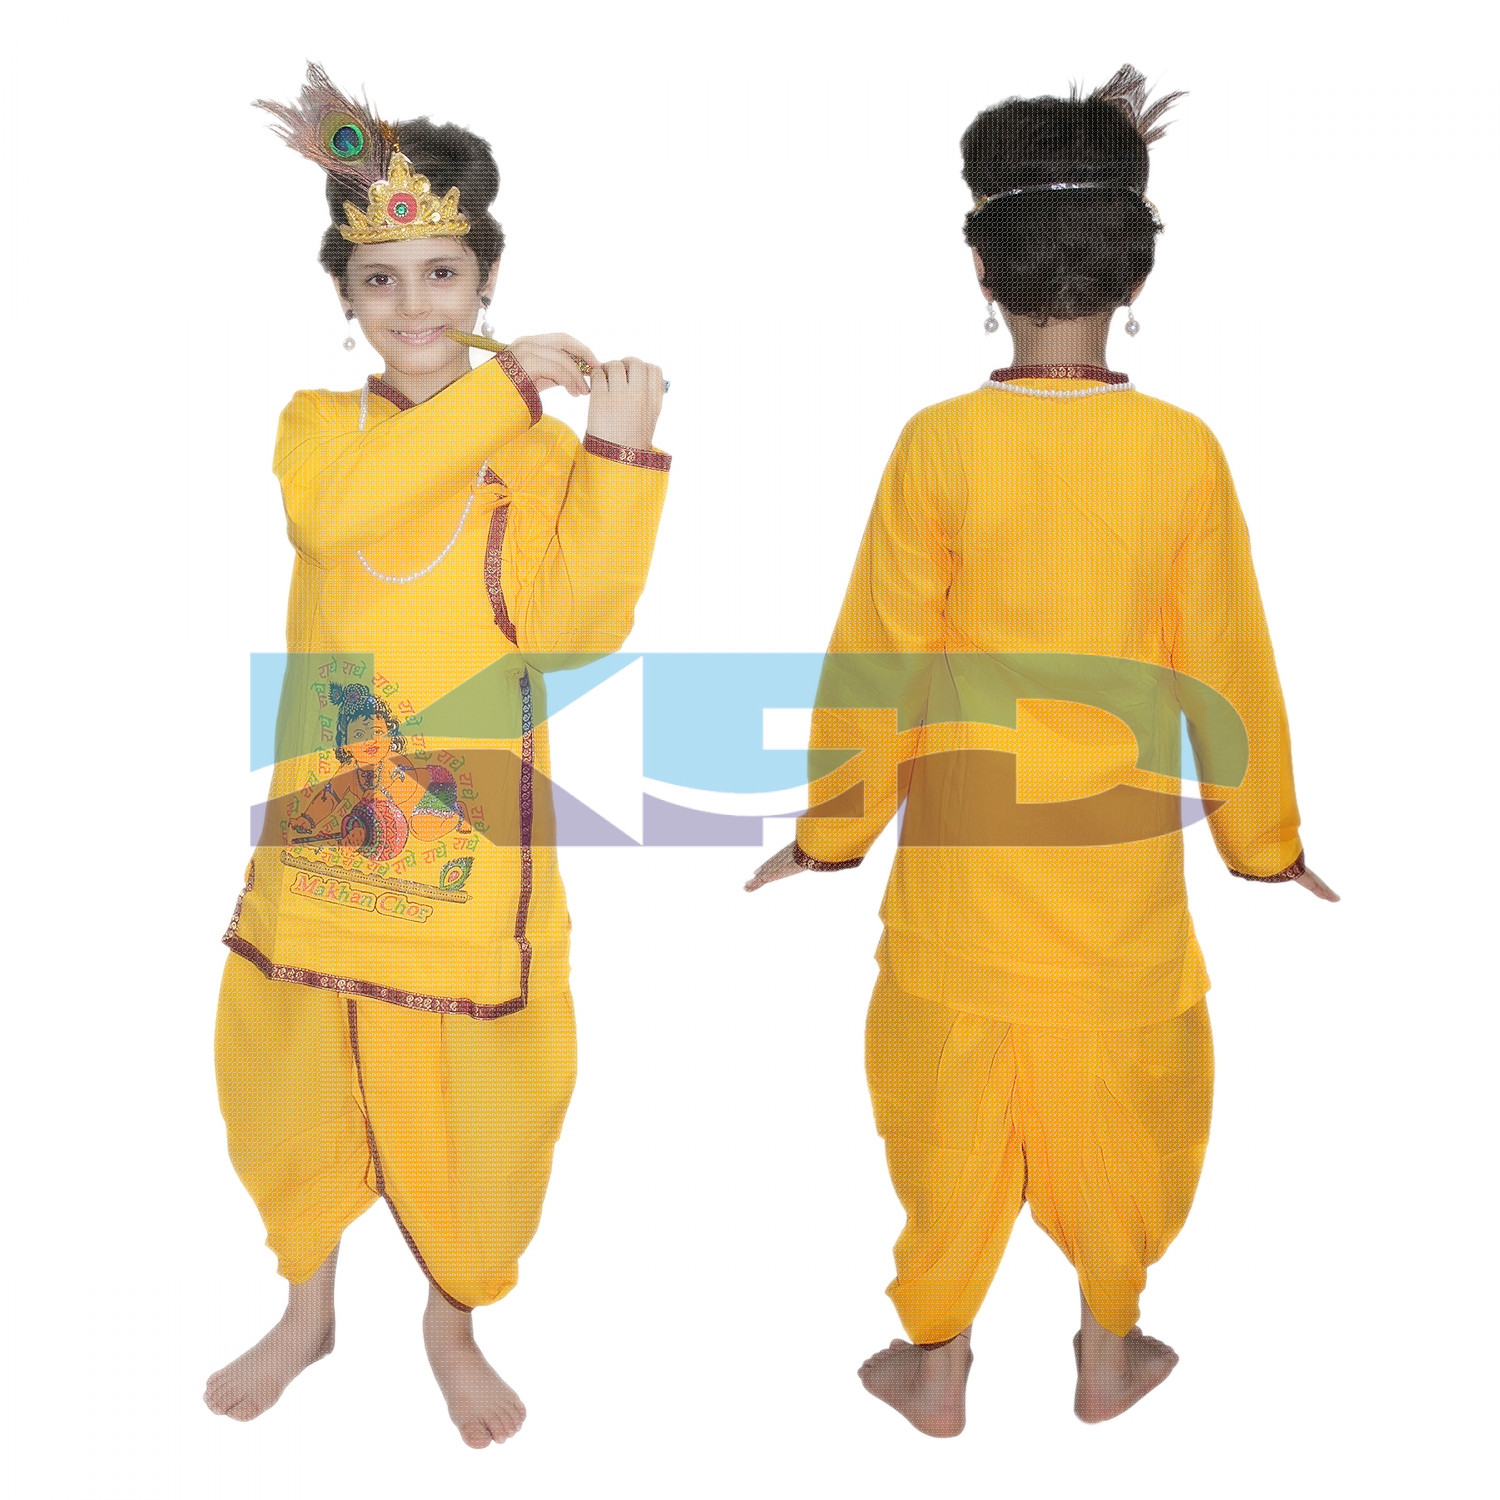 Krishna in Cotton Without Jewellery fancy dress for kids,Krishnaleela/Janmashtami/Kanha/Mythological Character for Annual functionTtheme Party/Competition/Stage Shows Dress